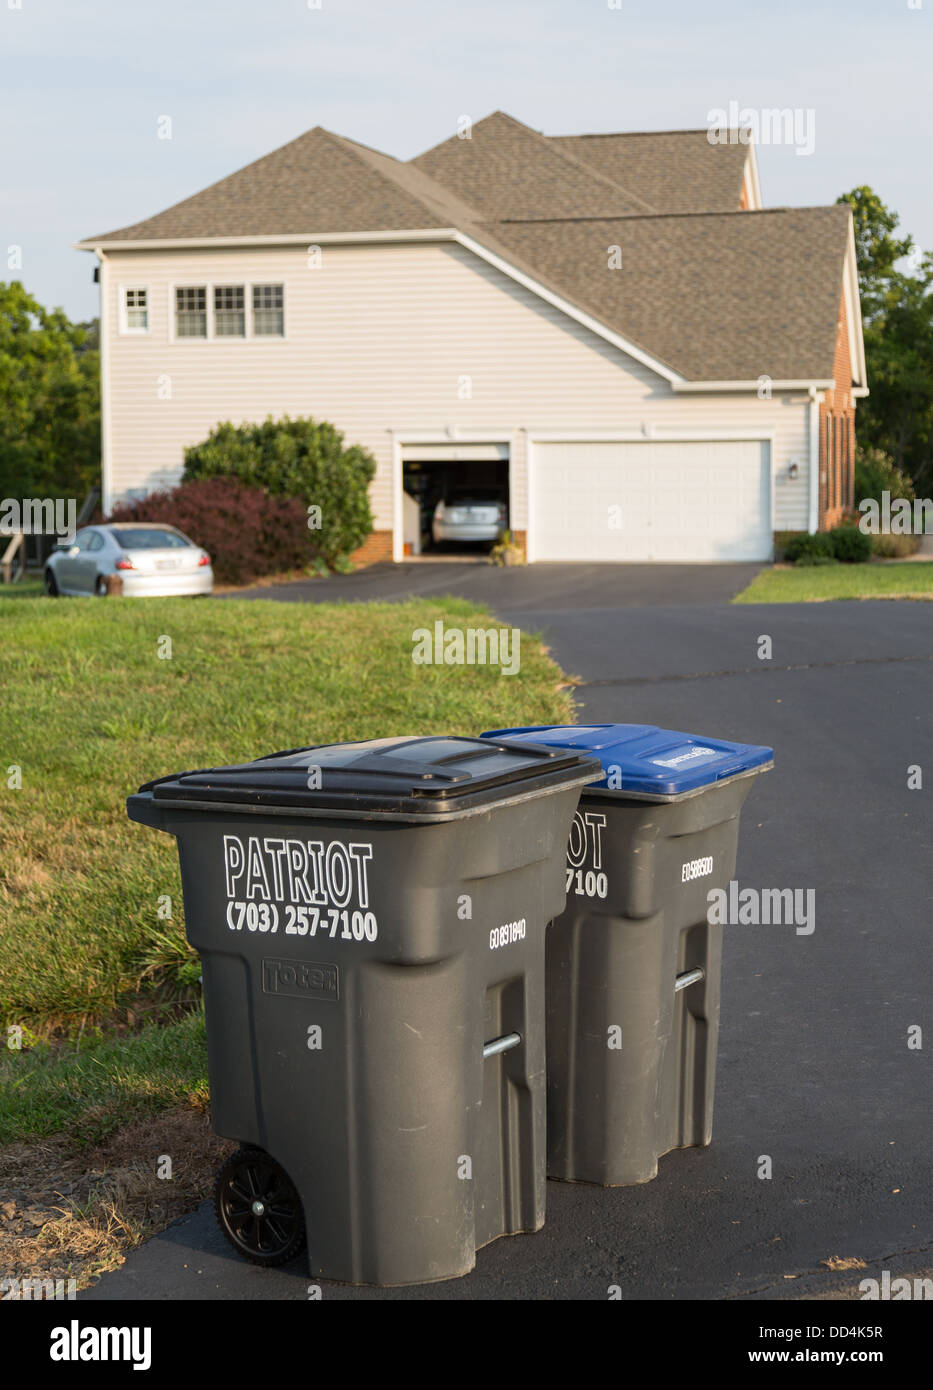 Typical US trash cans for rubbish collection outside single family home in suburbs of Virginia USA - Stock Image